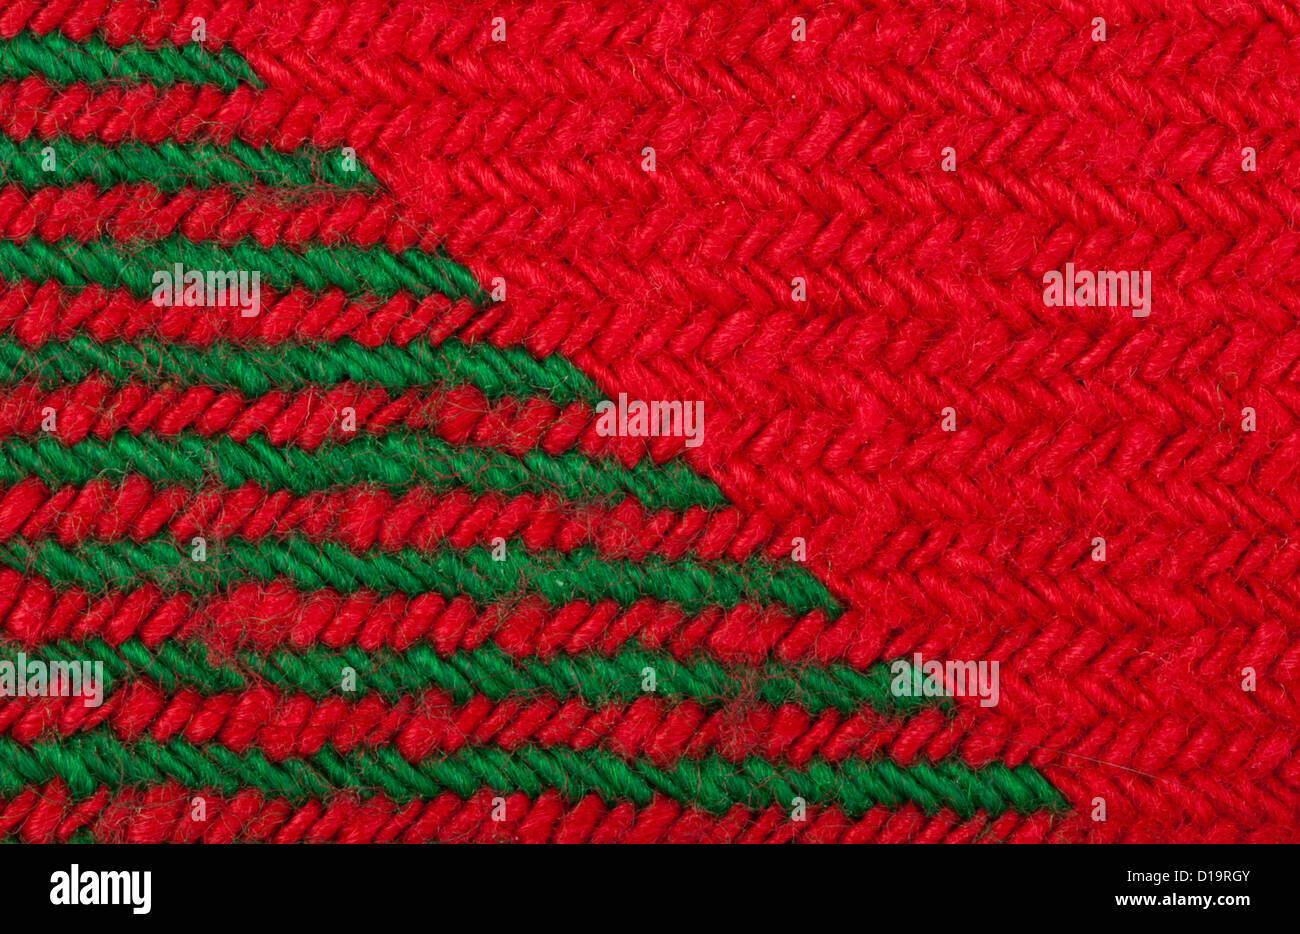 handmade knit green and red background close up structure of the yarn christmas colors